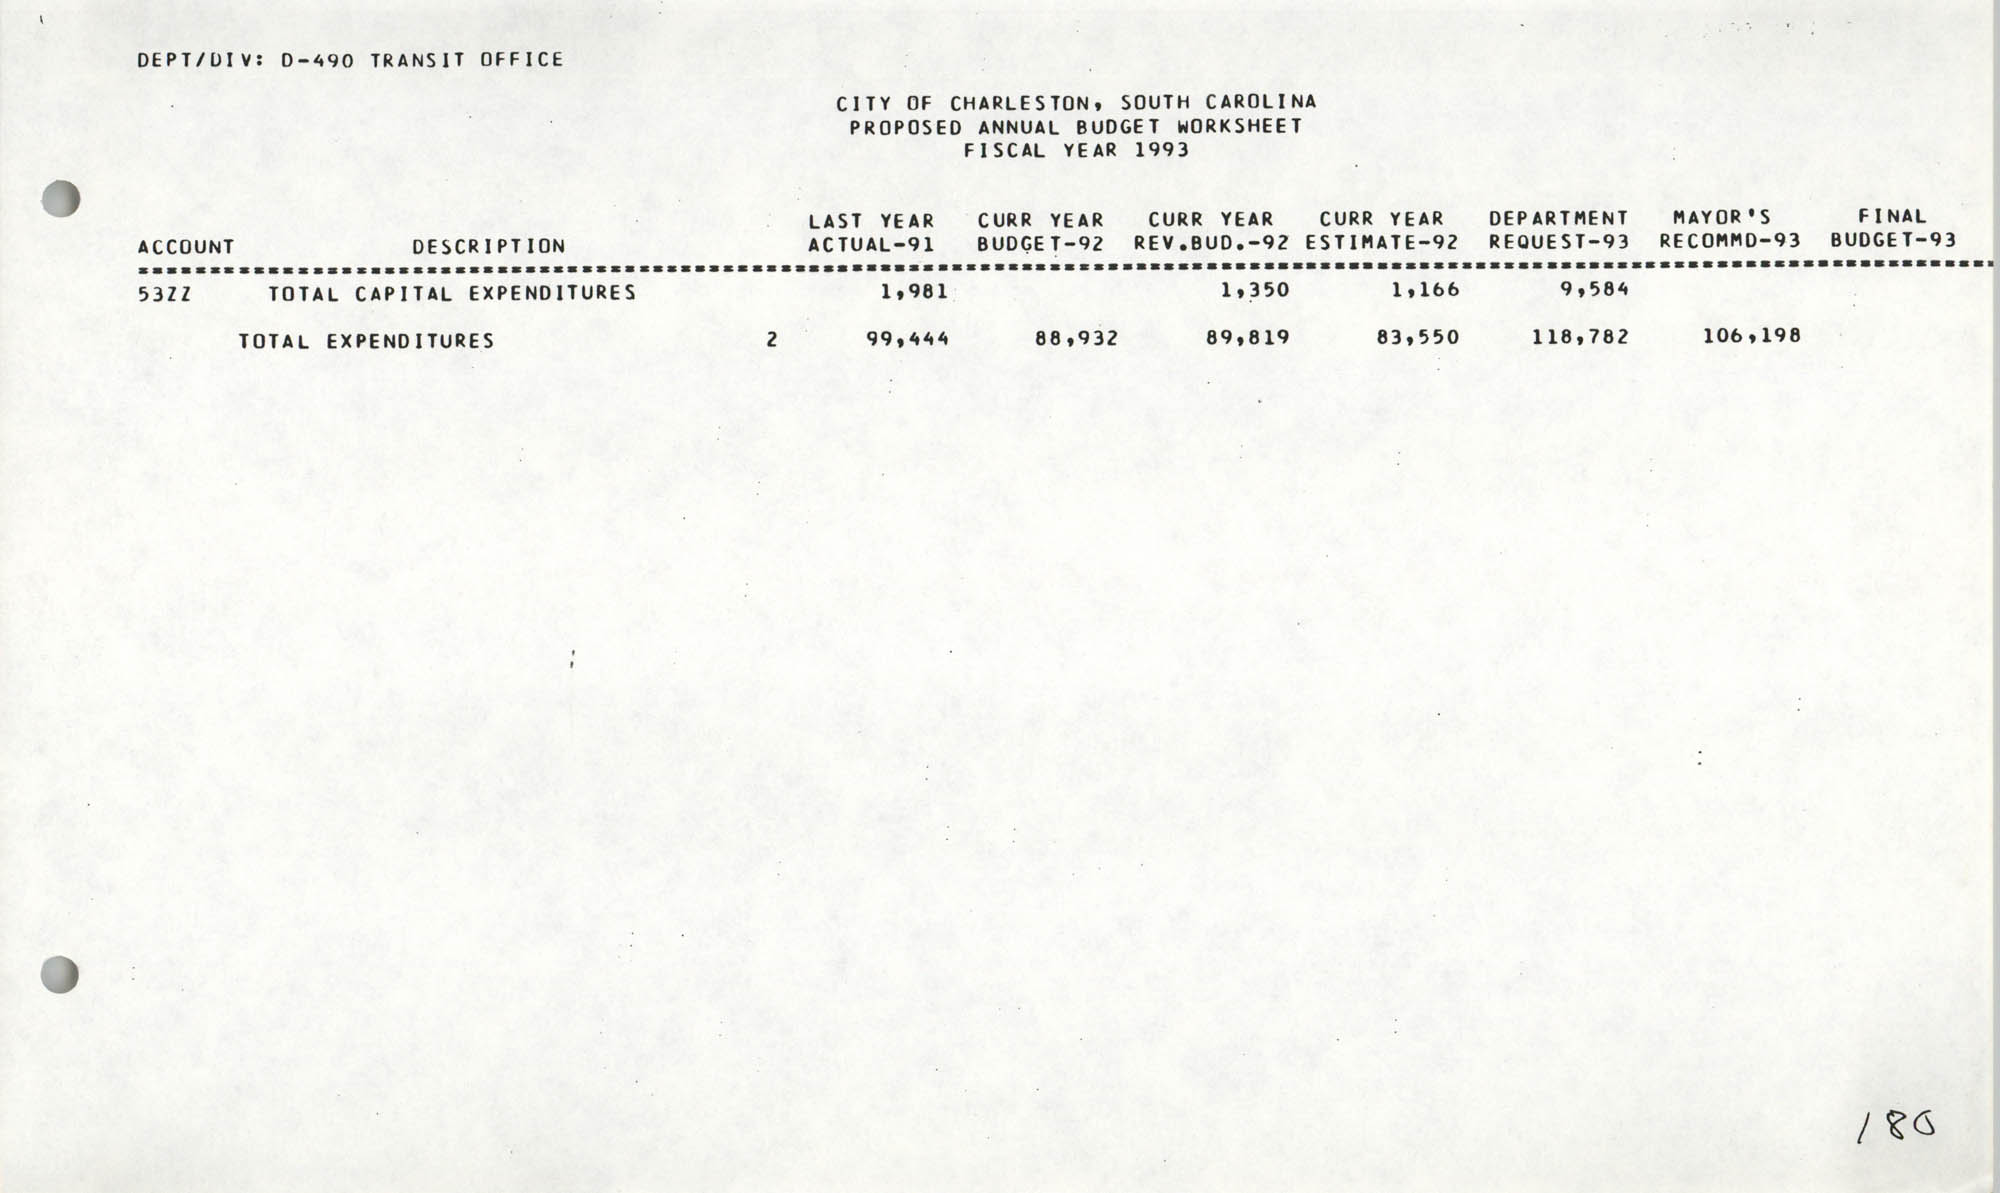 The City Council of Charleston, South Carolina, 1993 Budget, Page 180